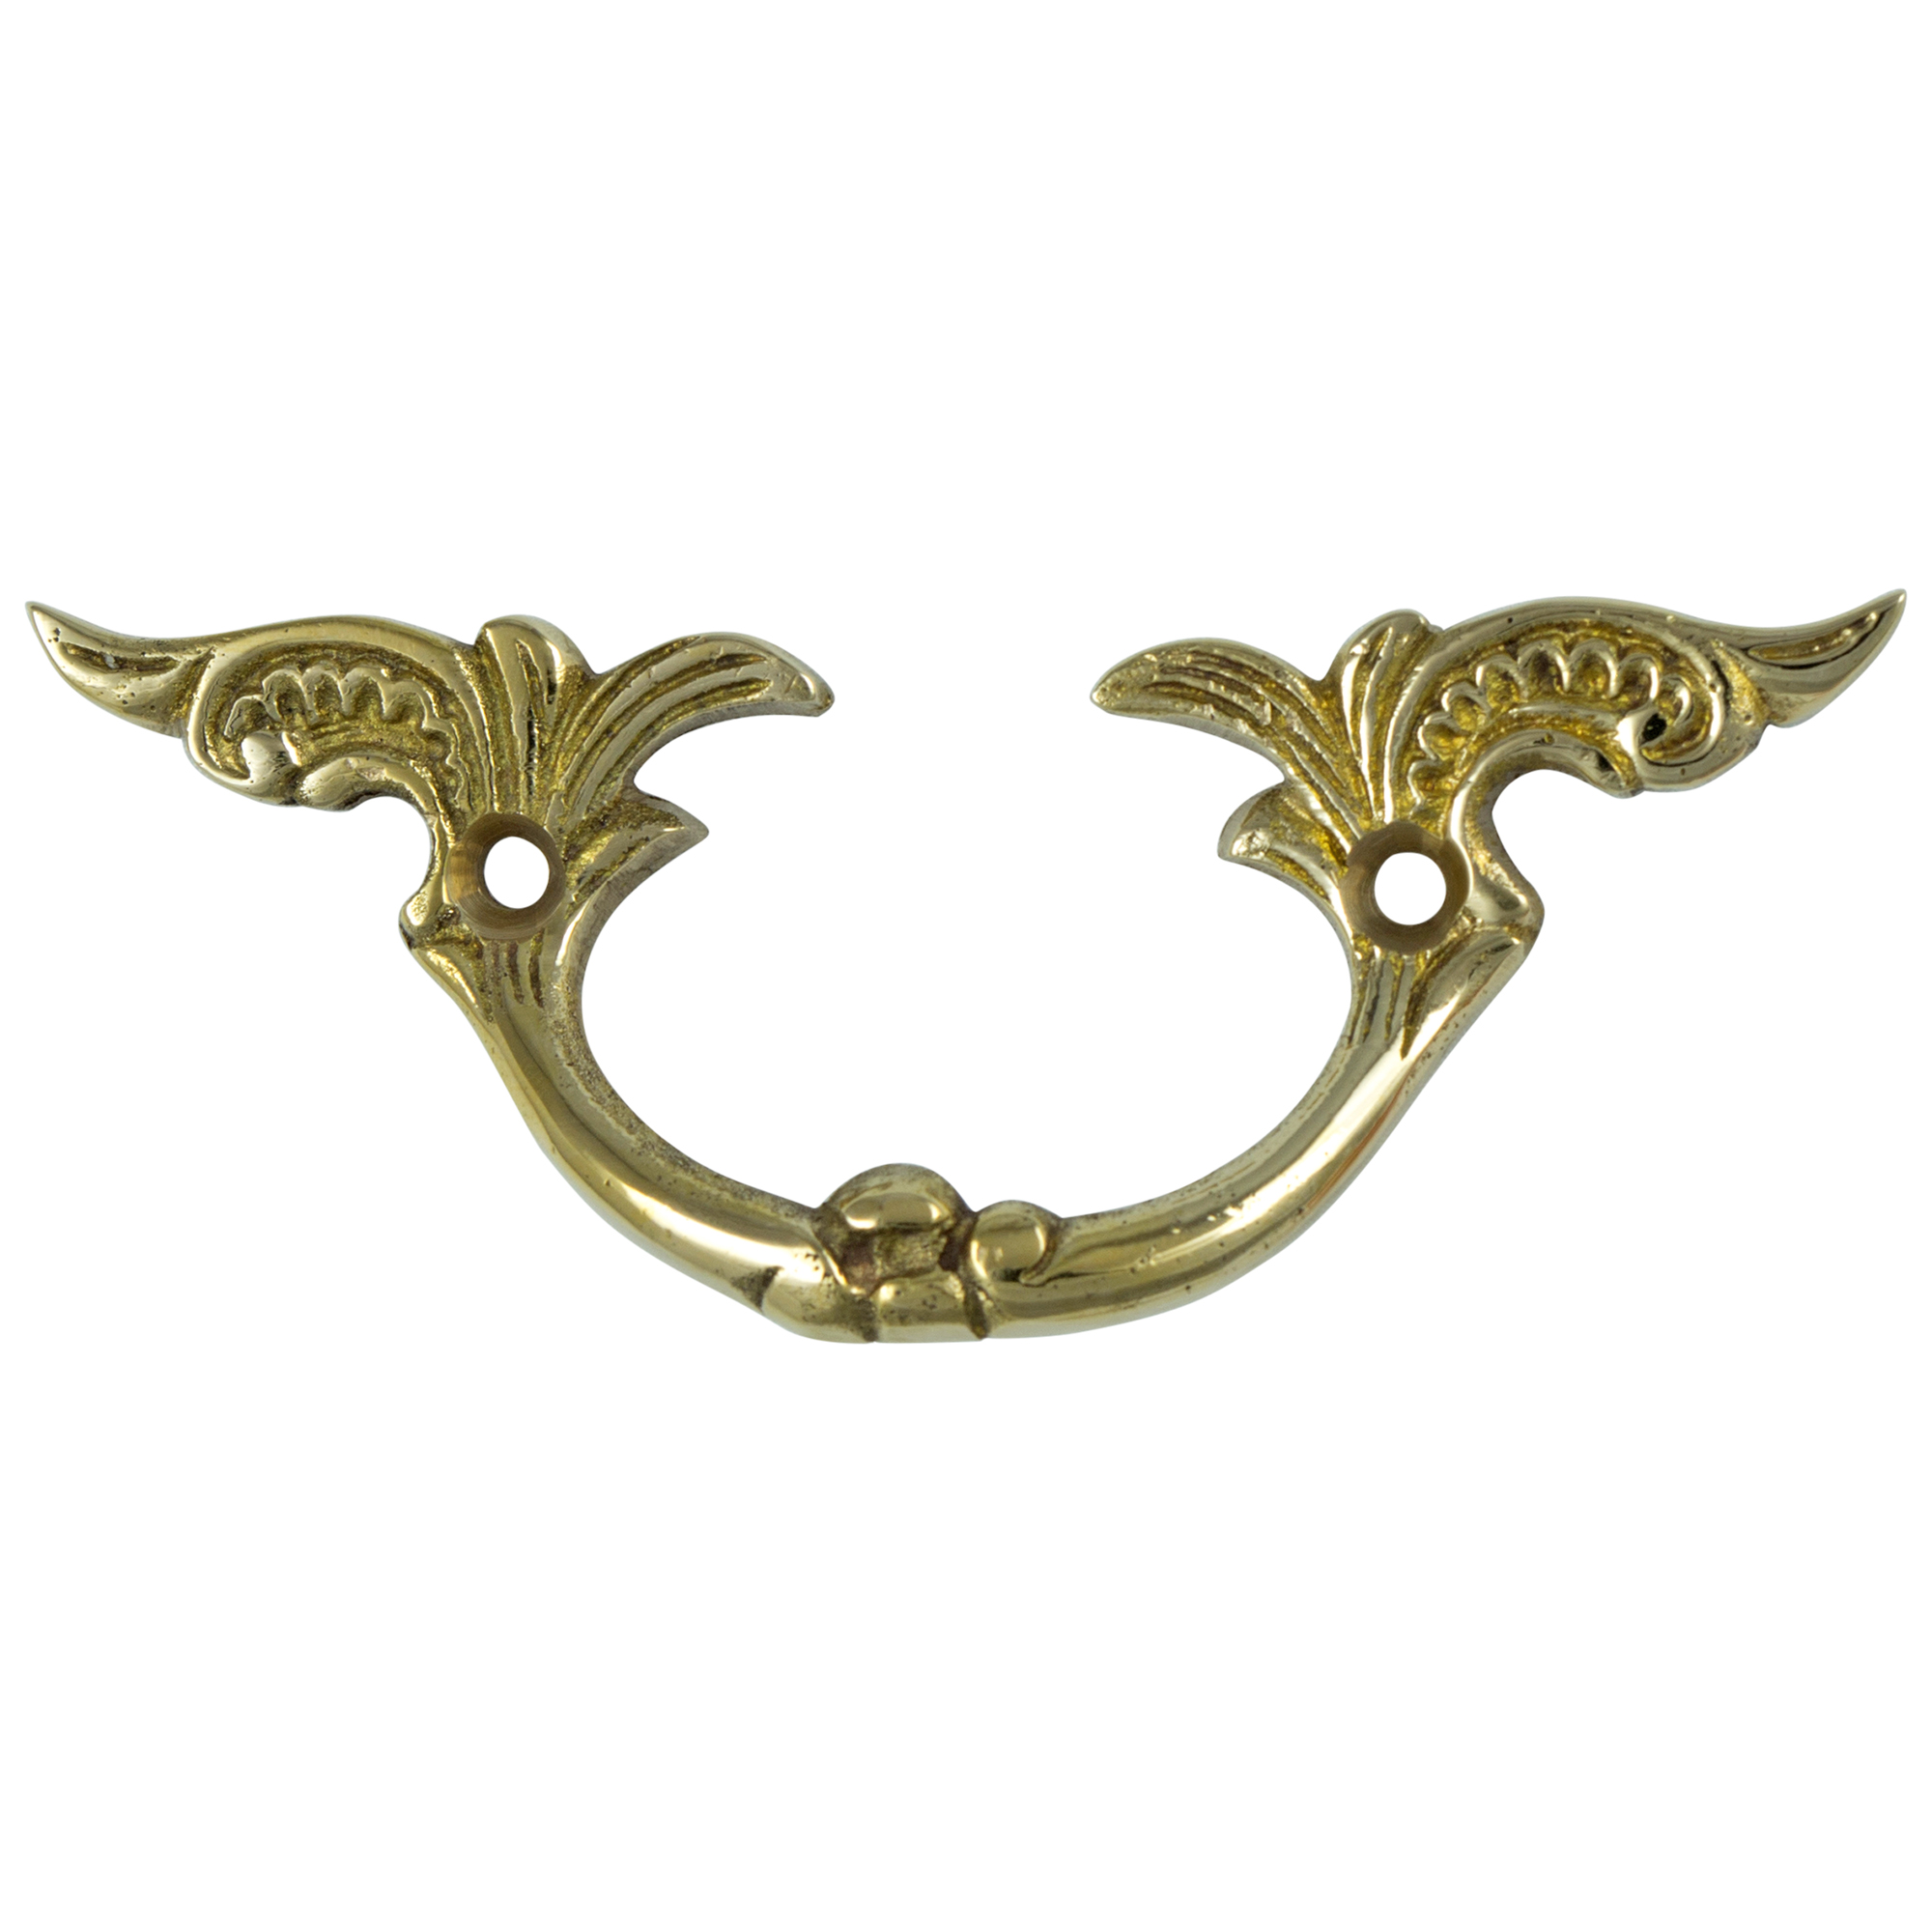 Brass Drawer and Dresser Cabinet Pull Antique Hardware Replica 1